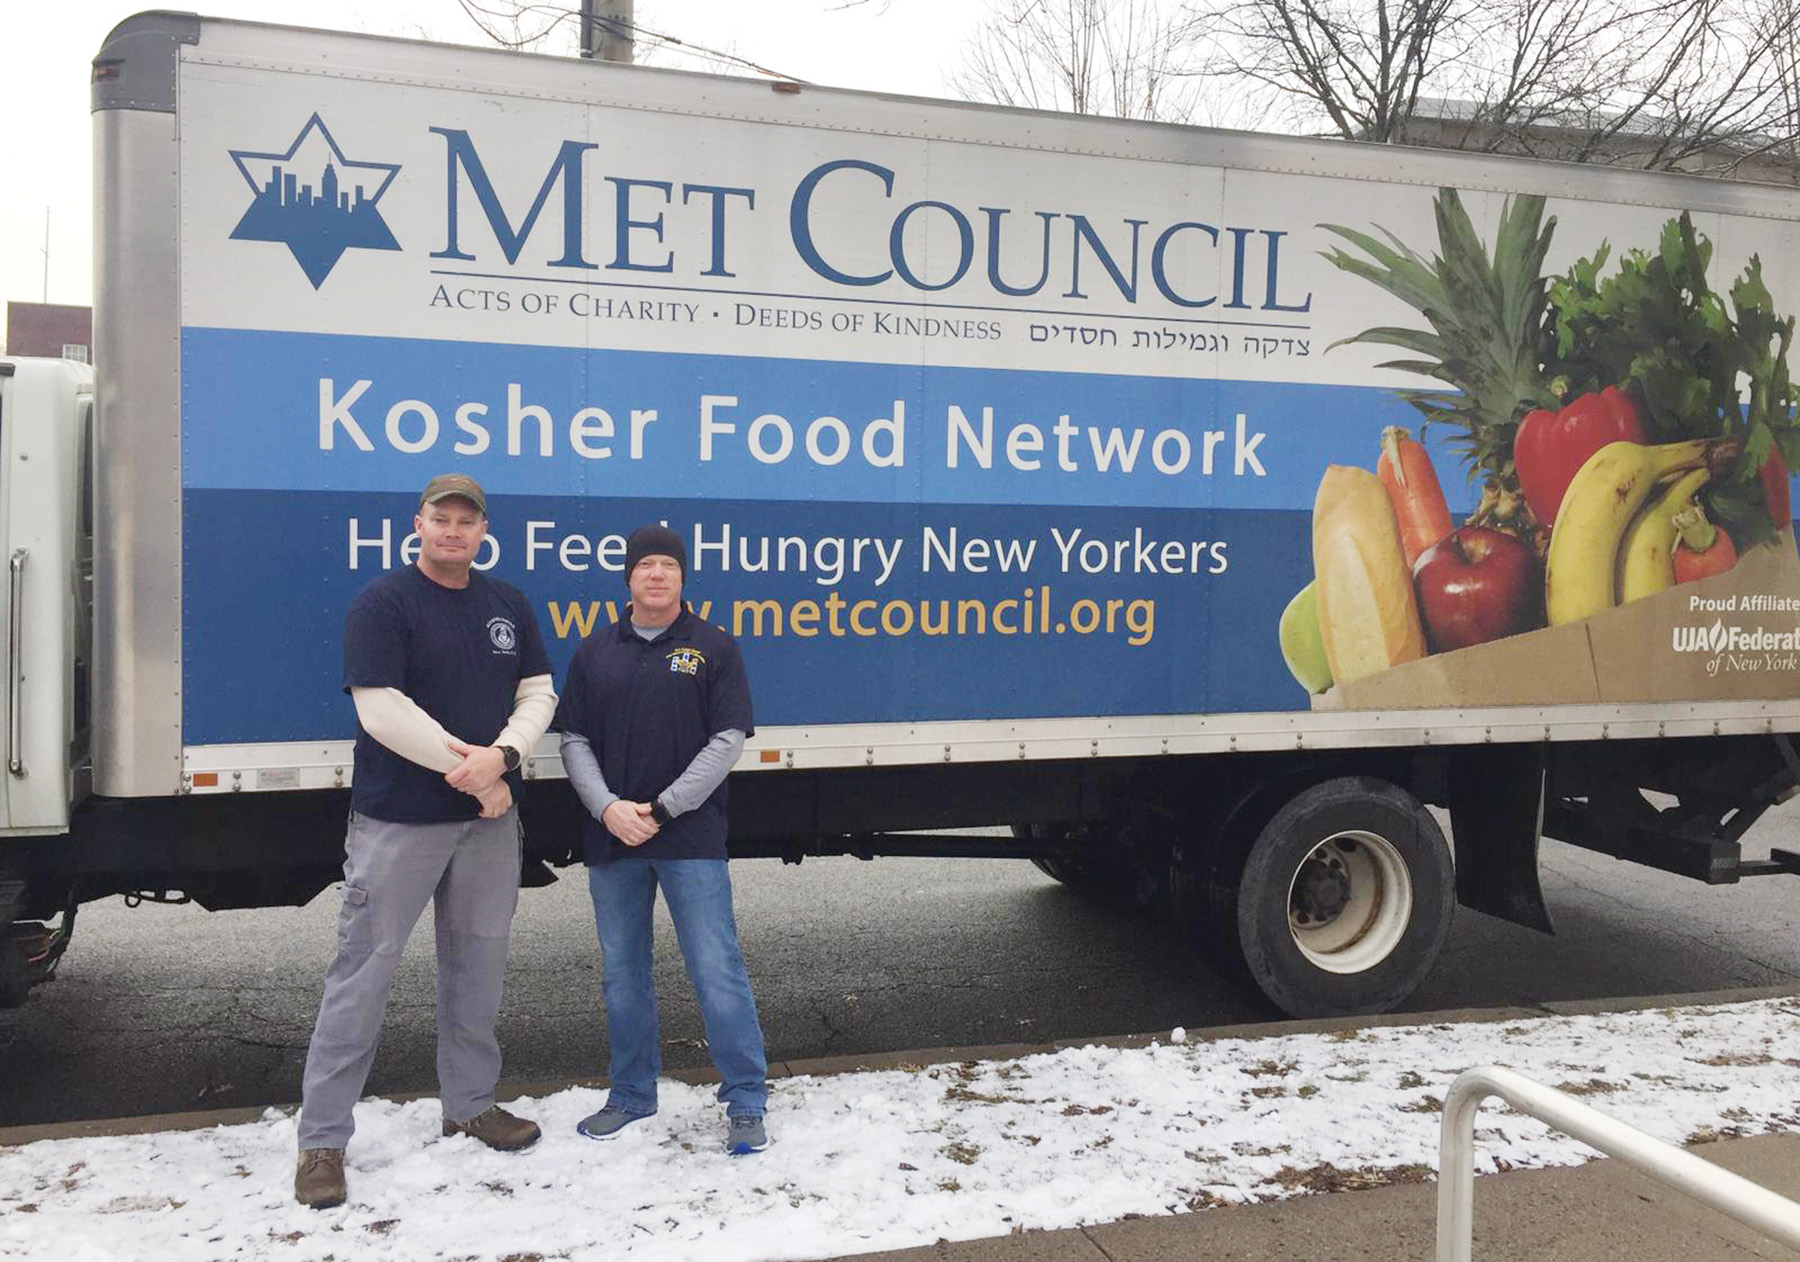 U.S. Coast Guard personnel on Staten Island receive a shipment of kosher food from Met Council. Getty Images / Courtesy Met Council